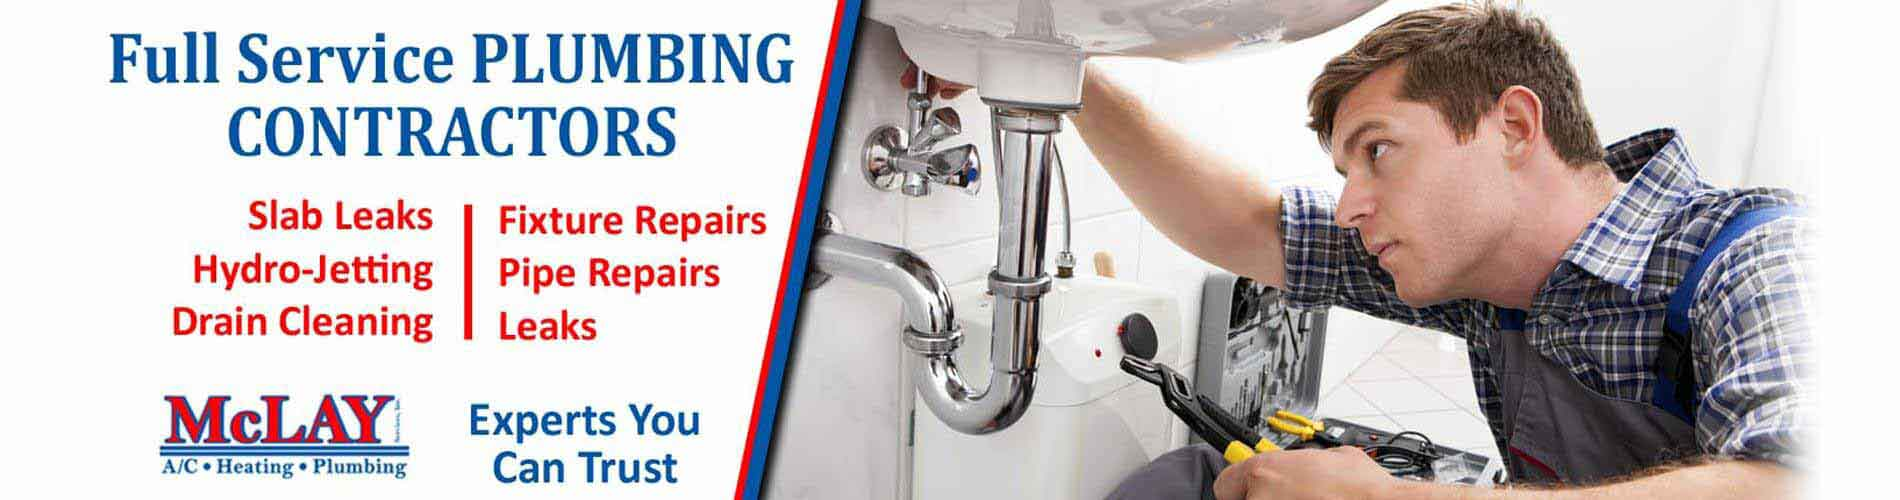 McLay Services, Inc. - Full Service Plumbing Contractors